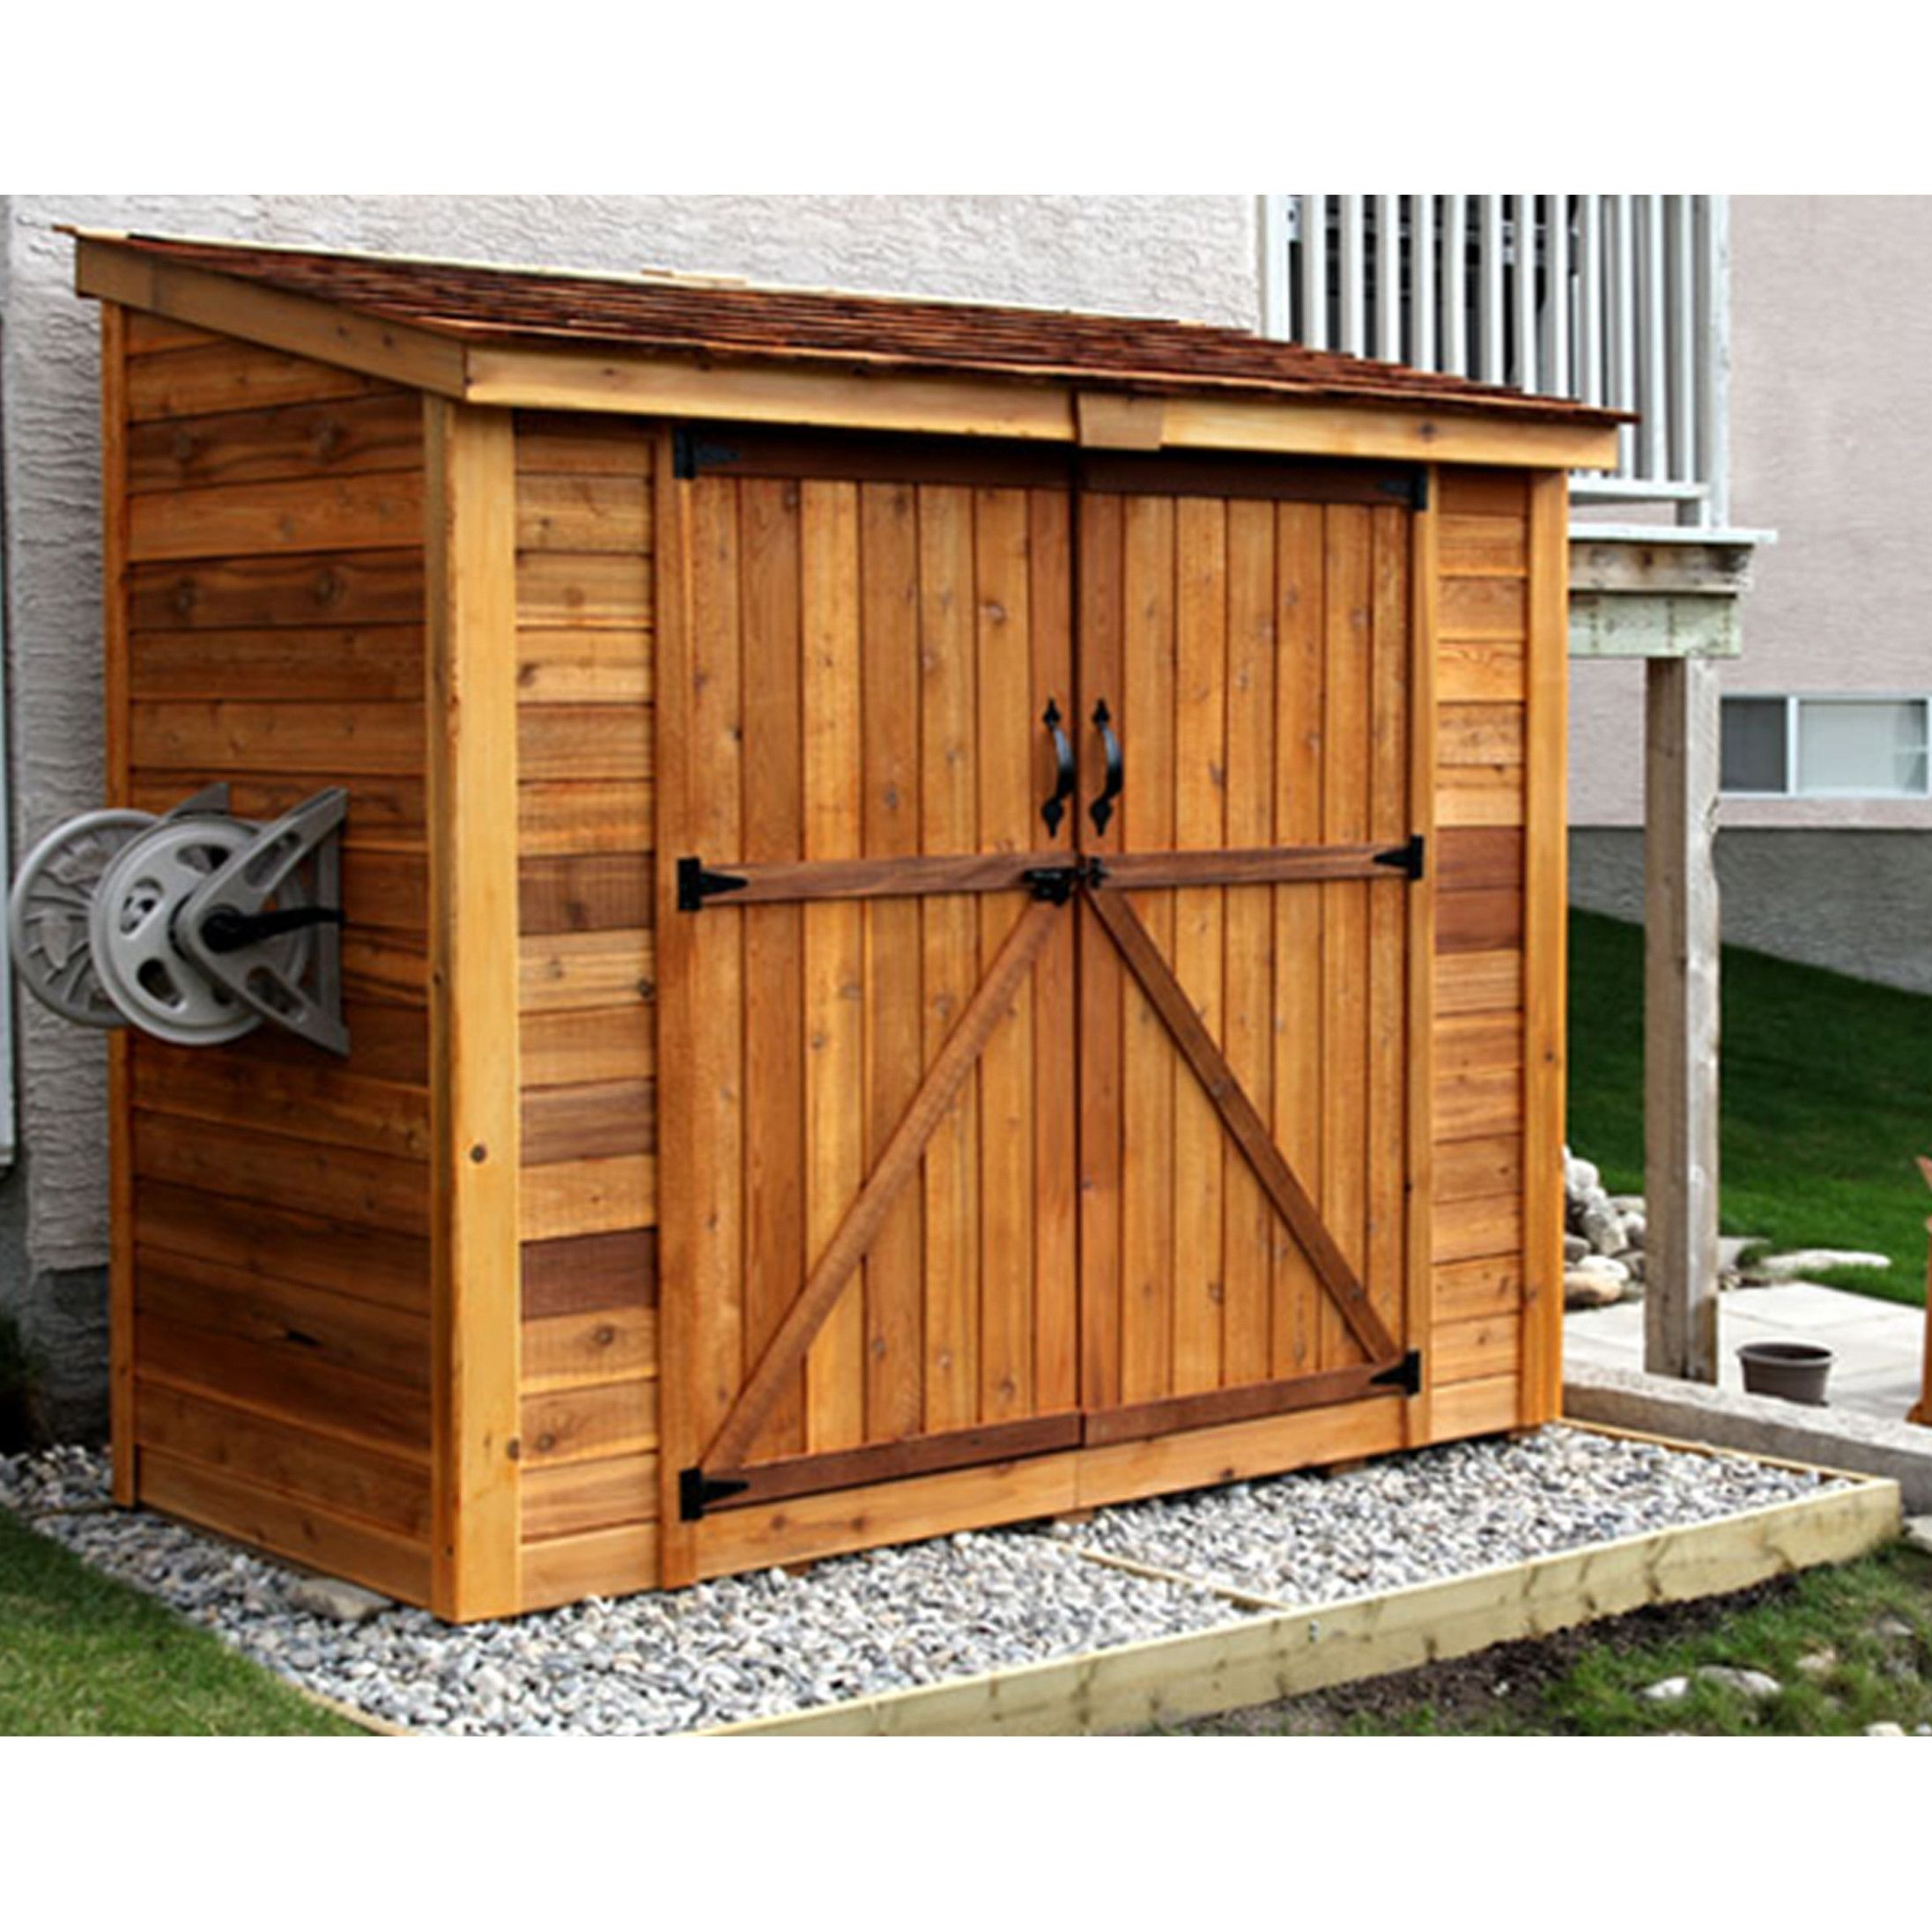 outdoor living today spacesaver 8 ft w x 4 ft d garden shed with - Garden Sheds 8 X 3